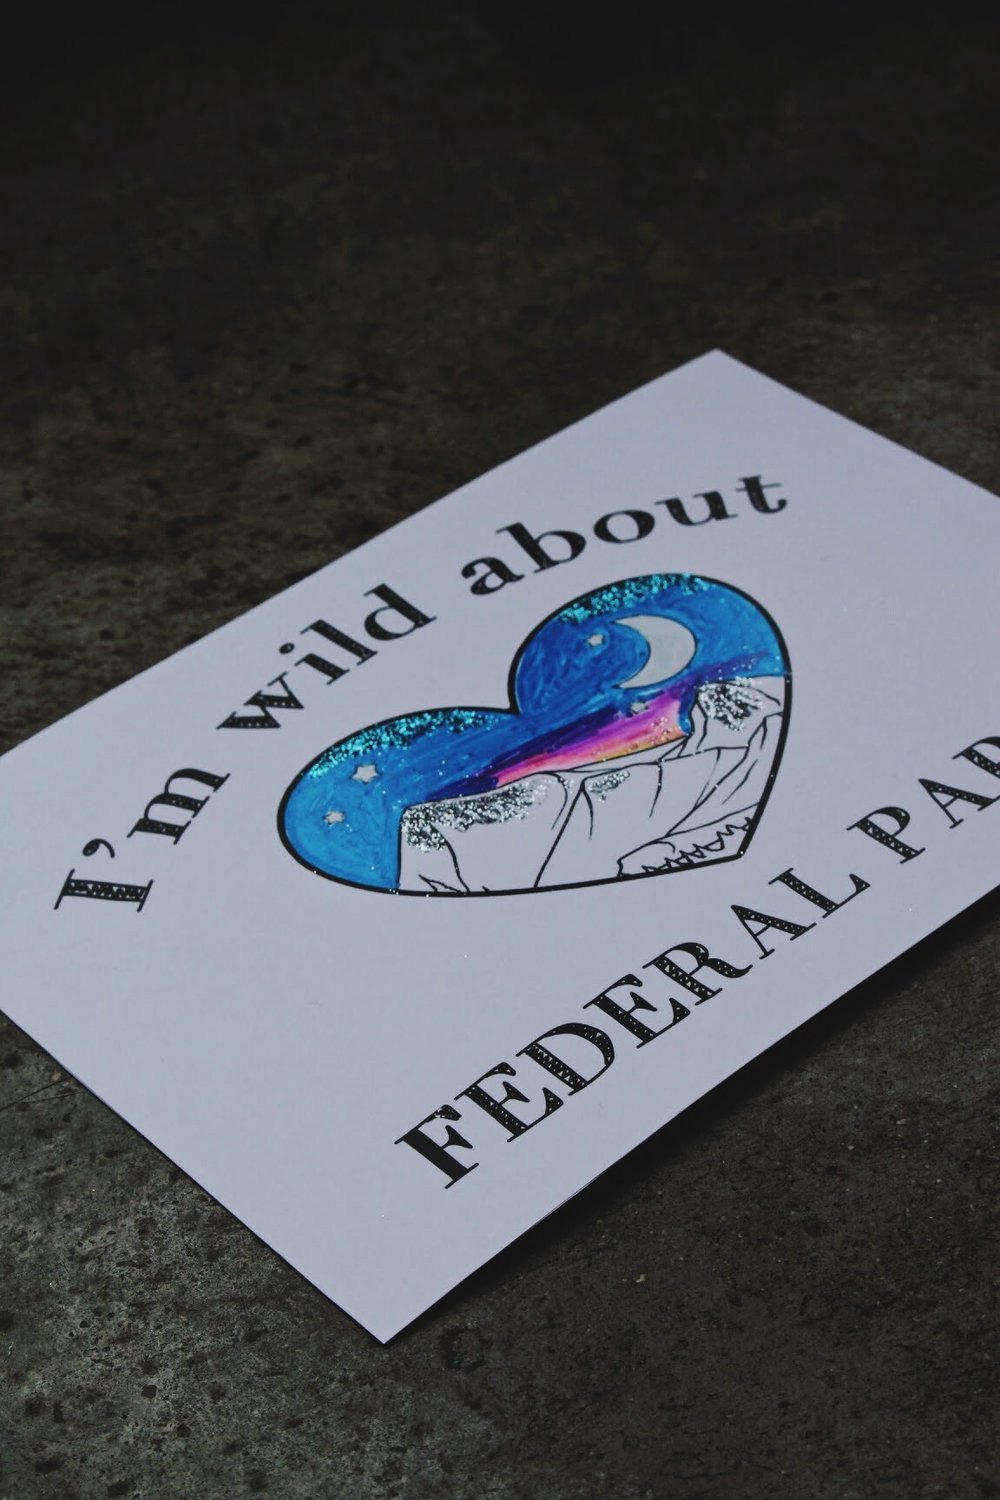 Free Downloadable Printable Political Postcards